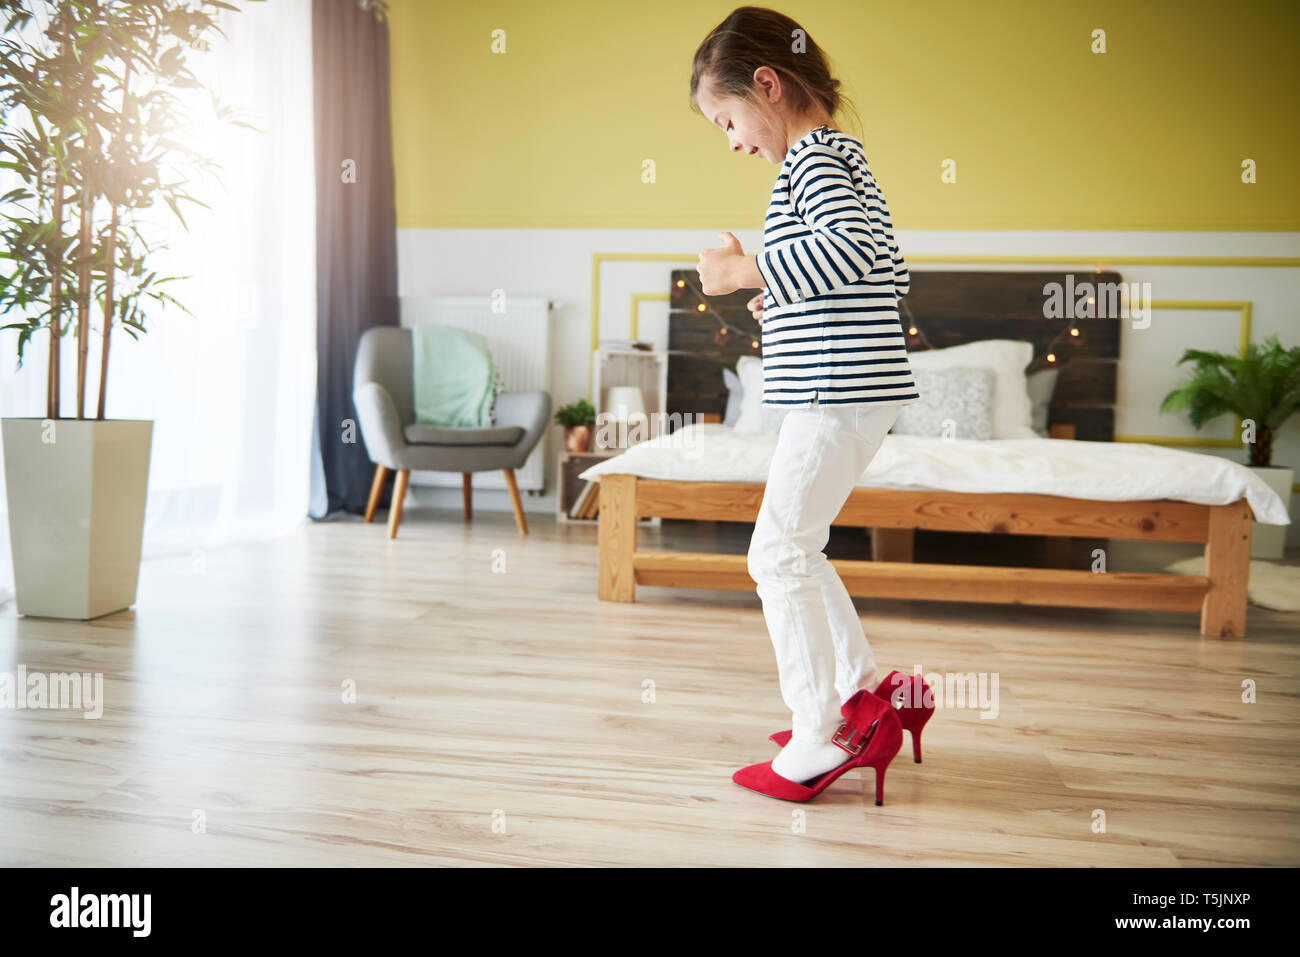 Little girl dressing up, wearing mother's red high heels - Stock Image